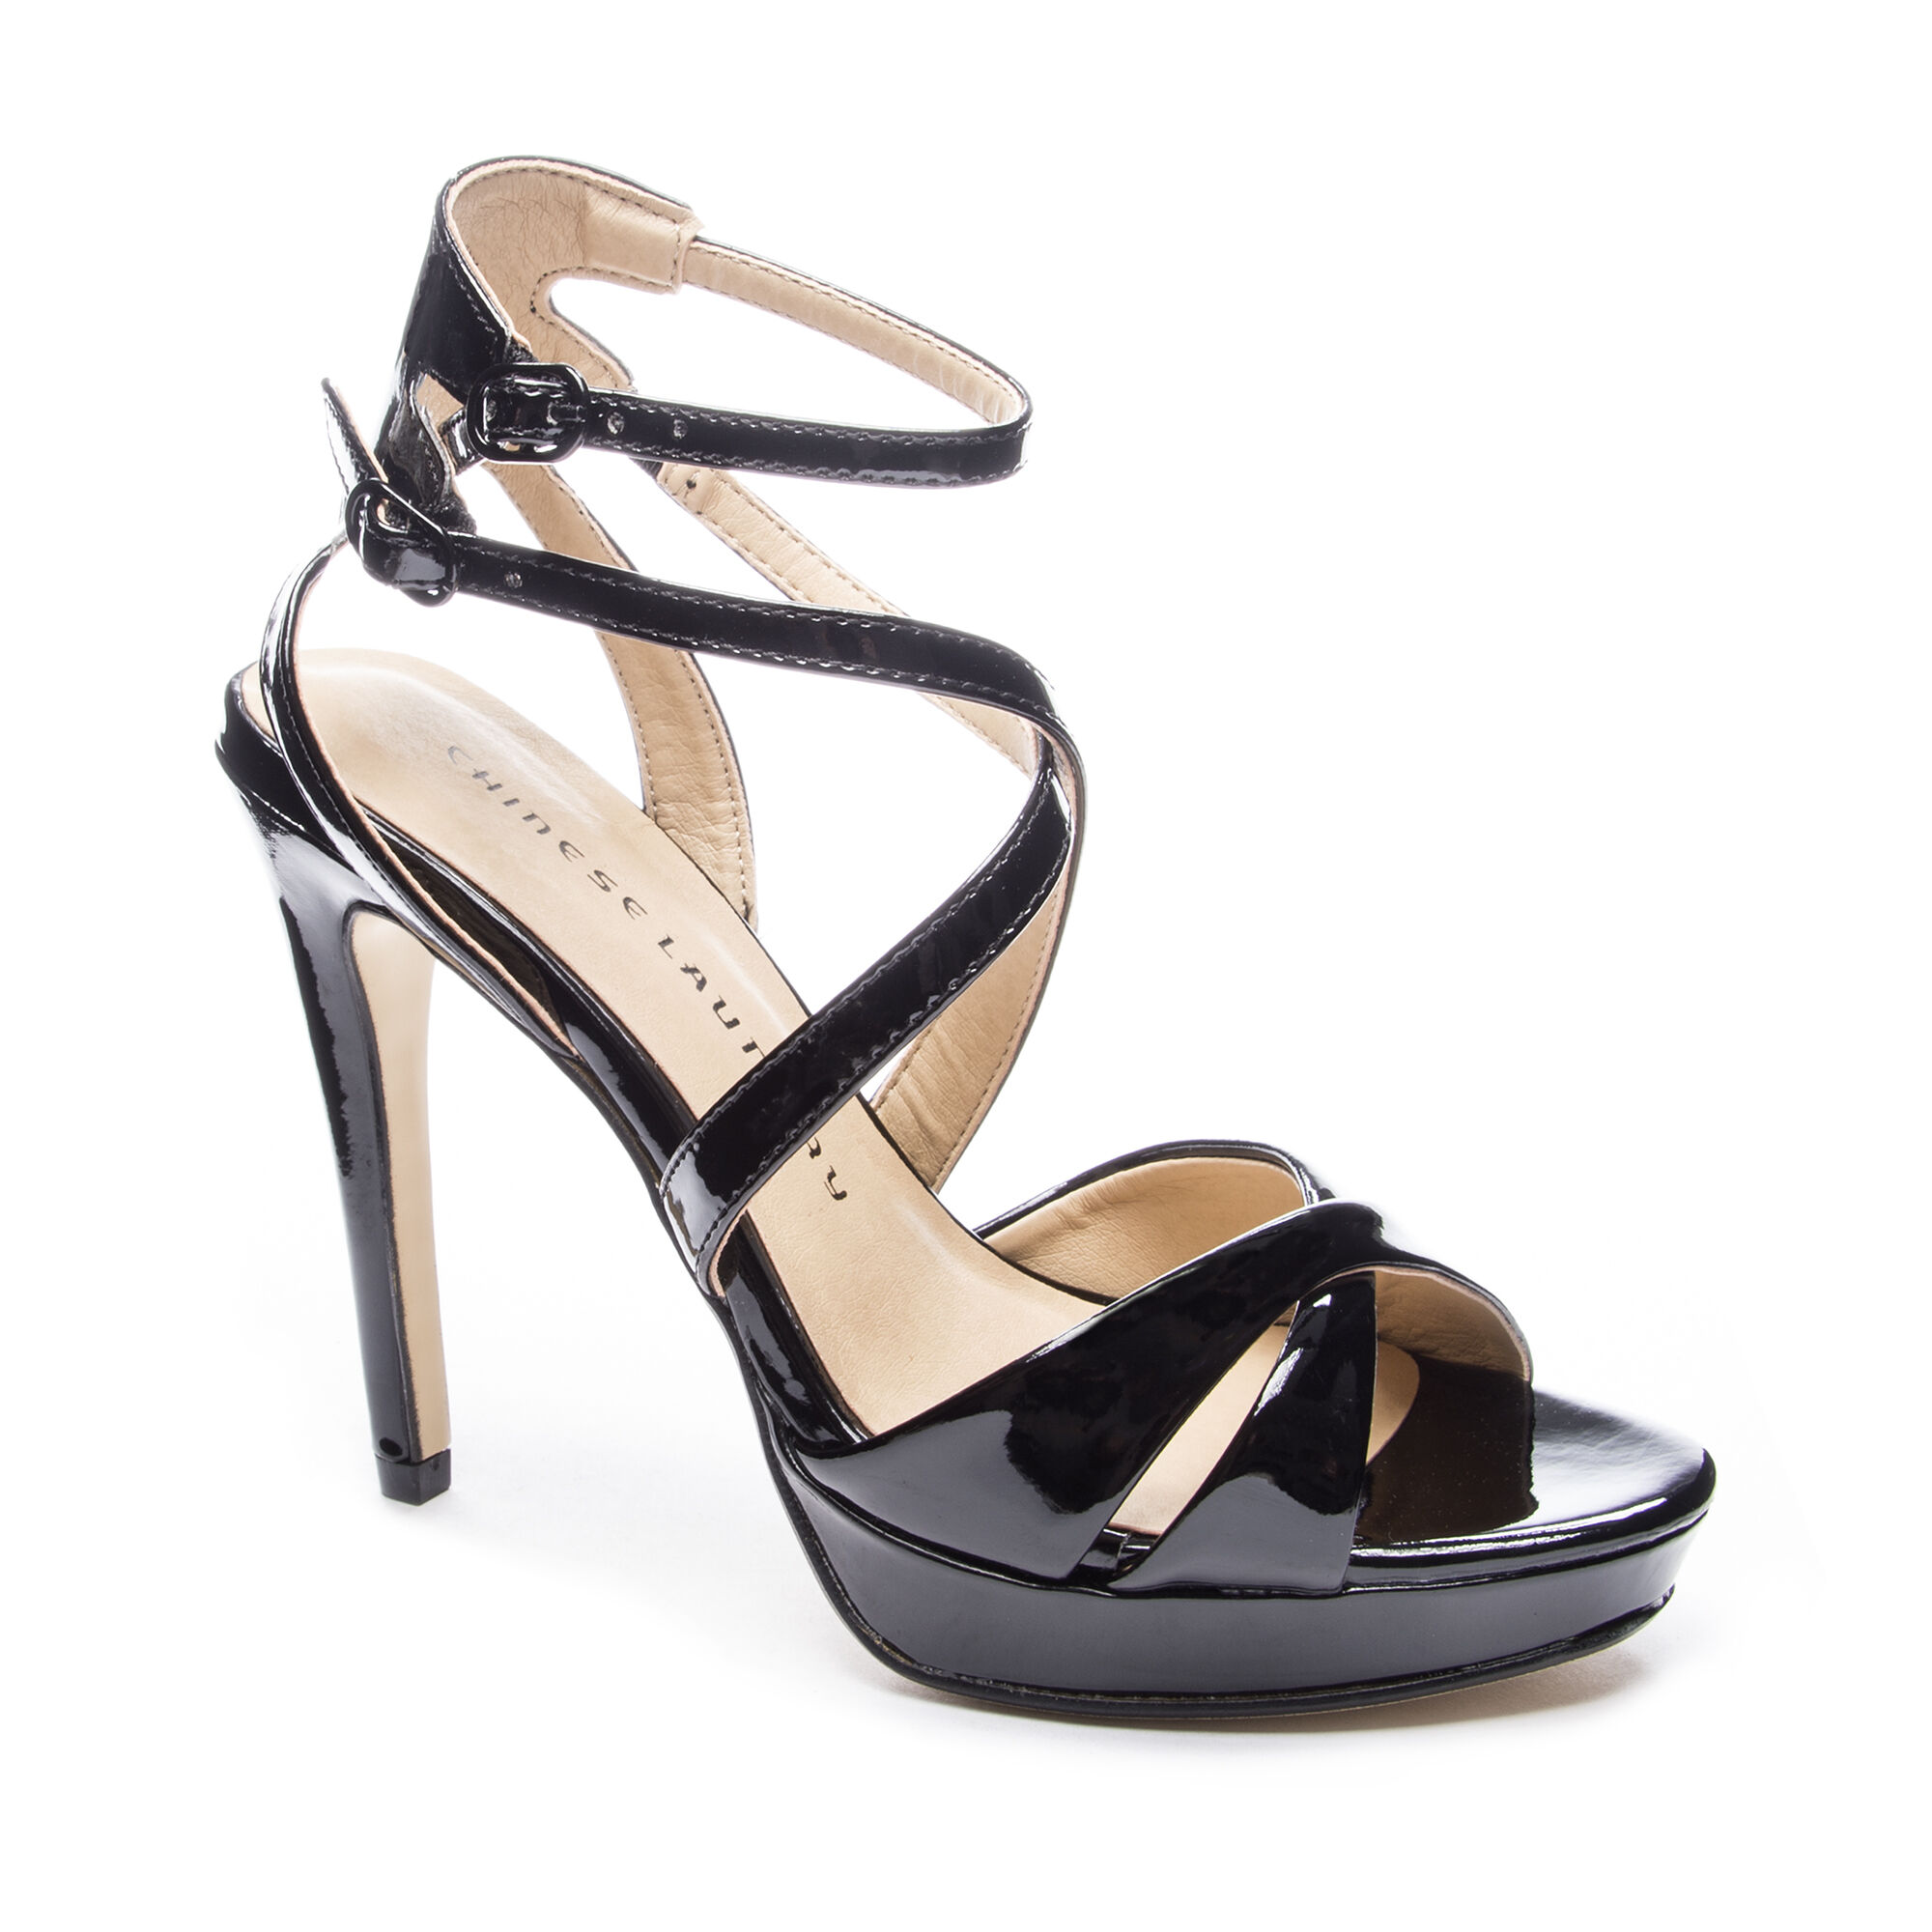 40c9001315 Chinese Laundry Highlight Strappy Patent Sandal